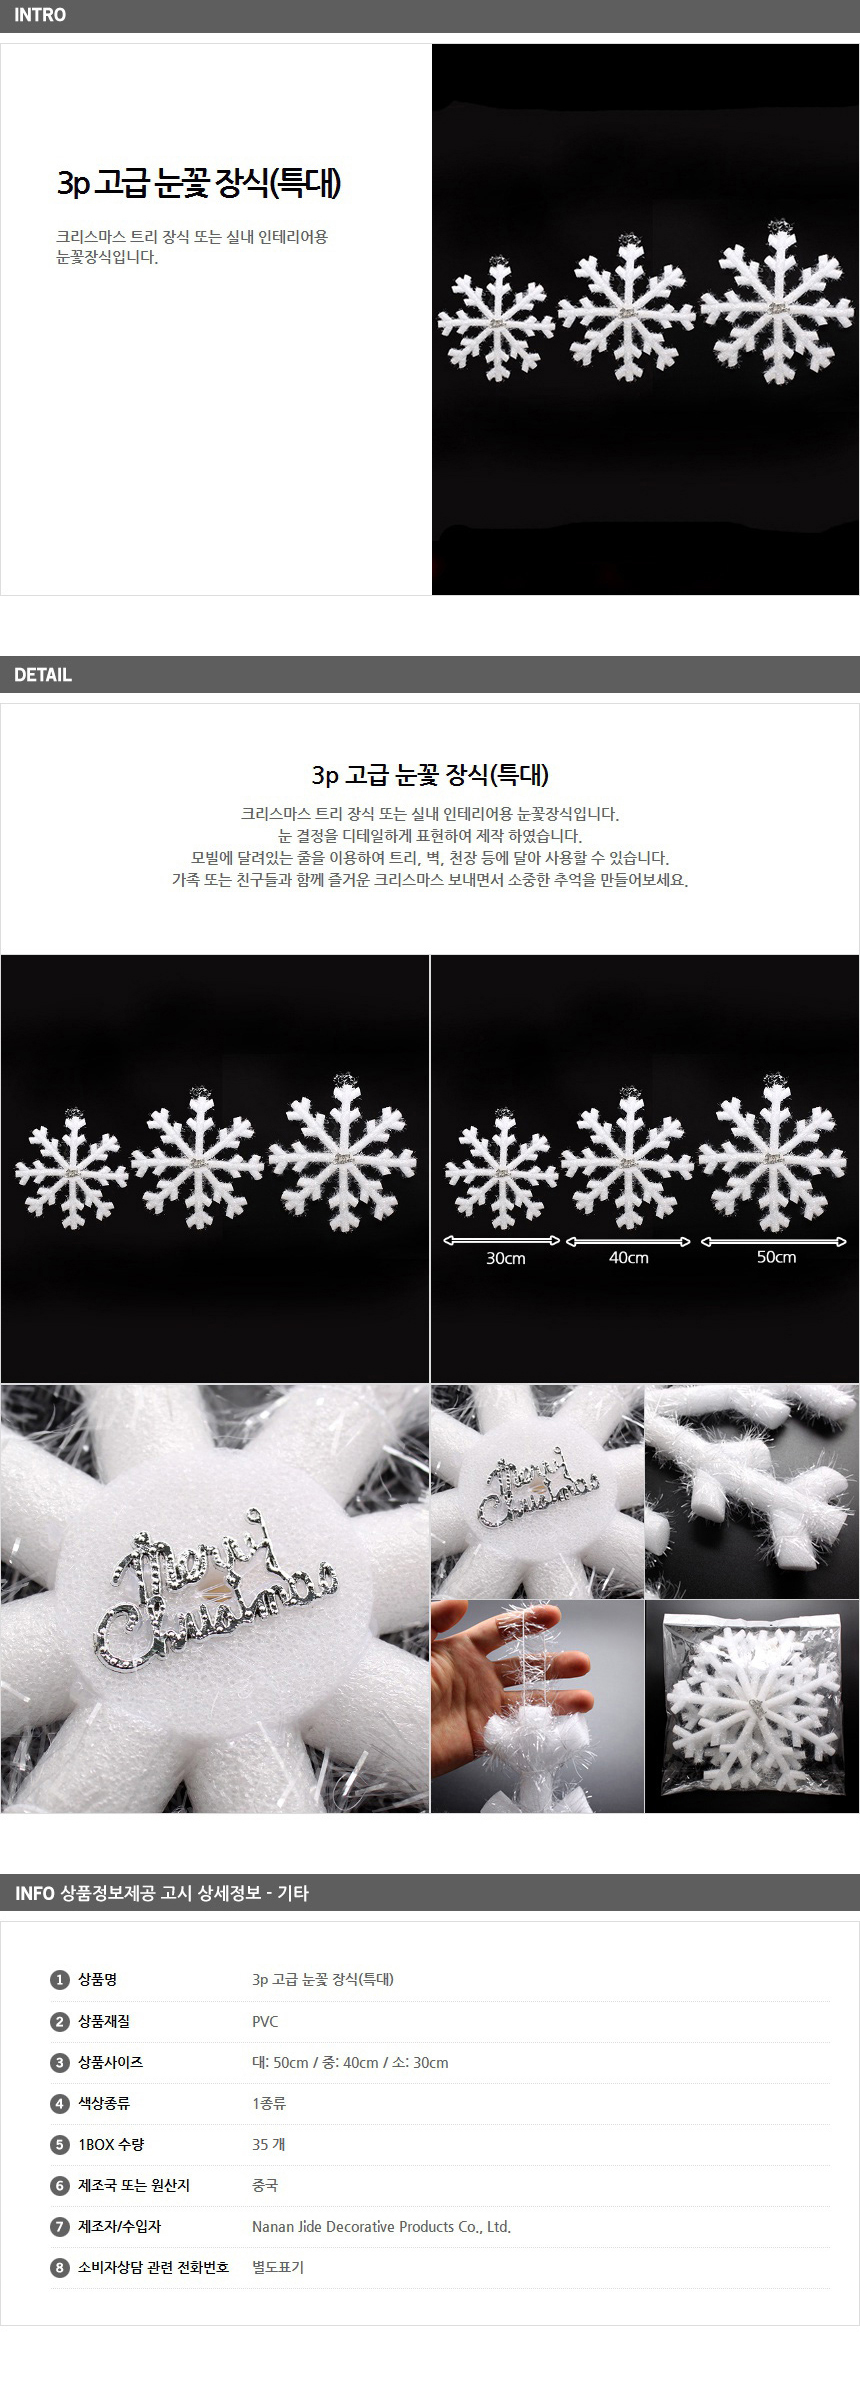 [ WINEQOK ] Christmas Goods / Advanced snow decoration